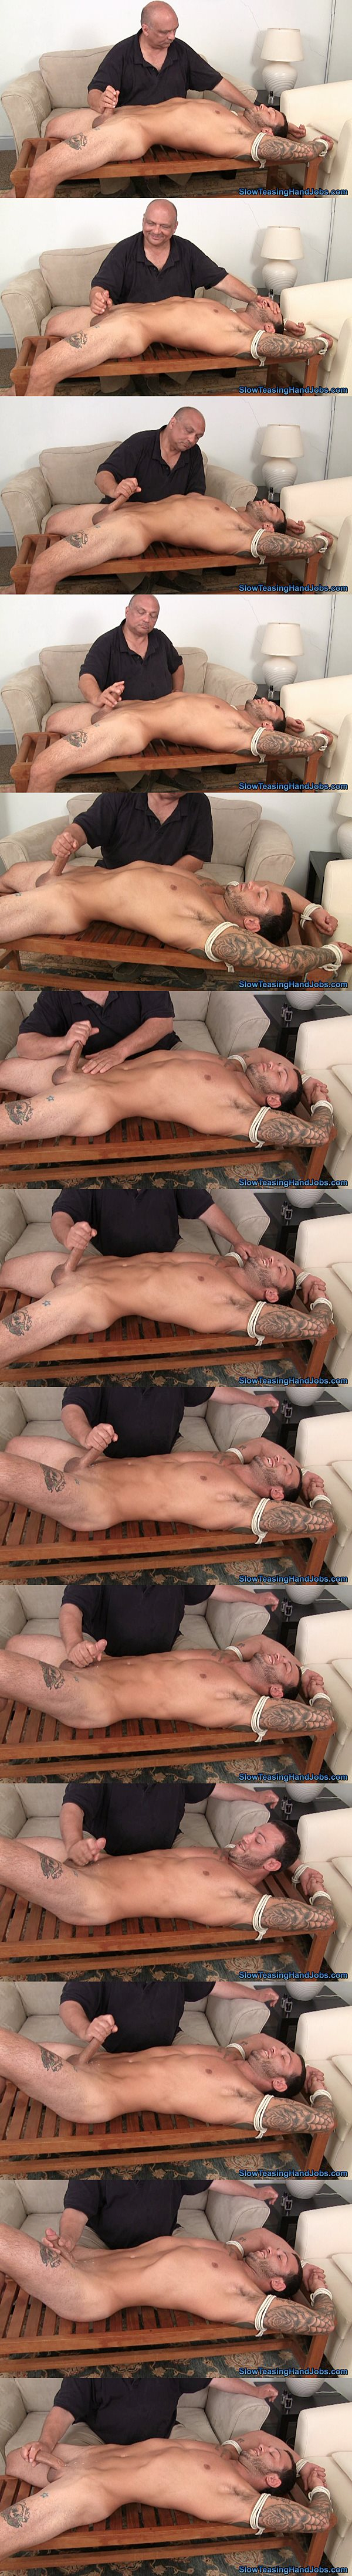 Sexy straight muscle stud Tony shoots his hot cum by Rich's amazing handjobs in Tony Has Sixty Seconds to Cum at Slowteasinghandjobs 02